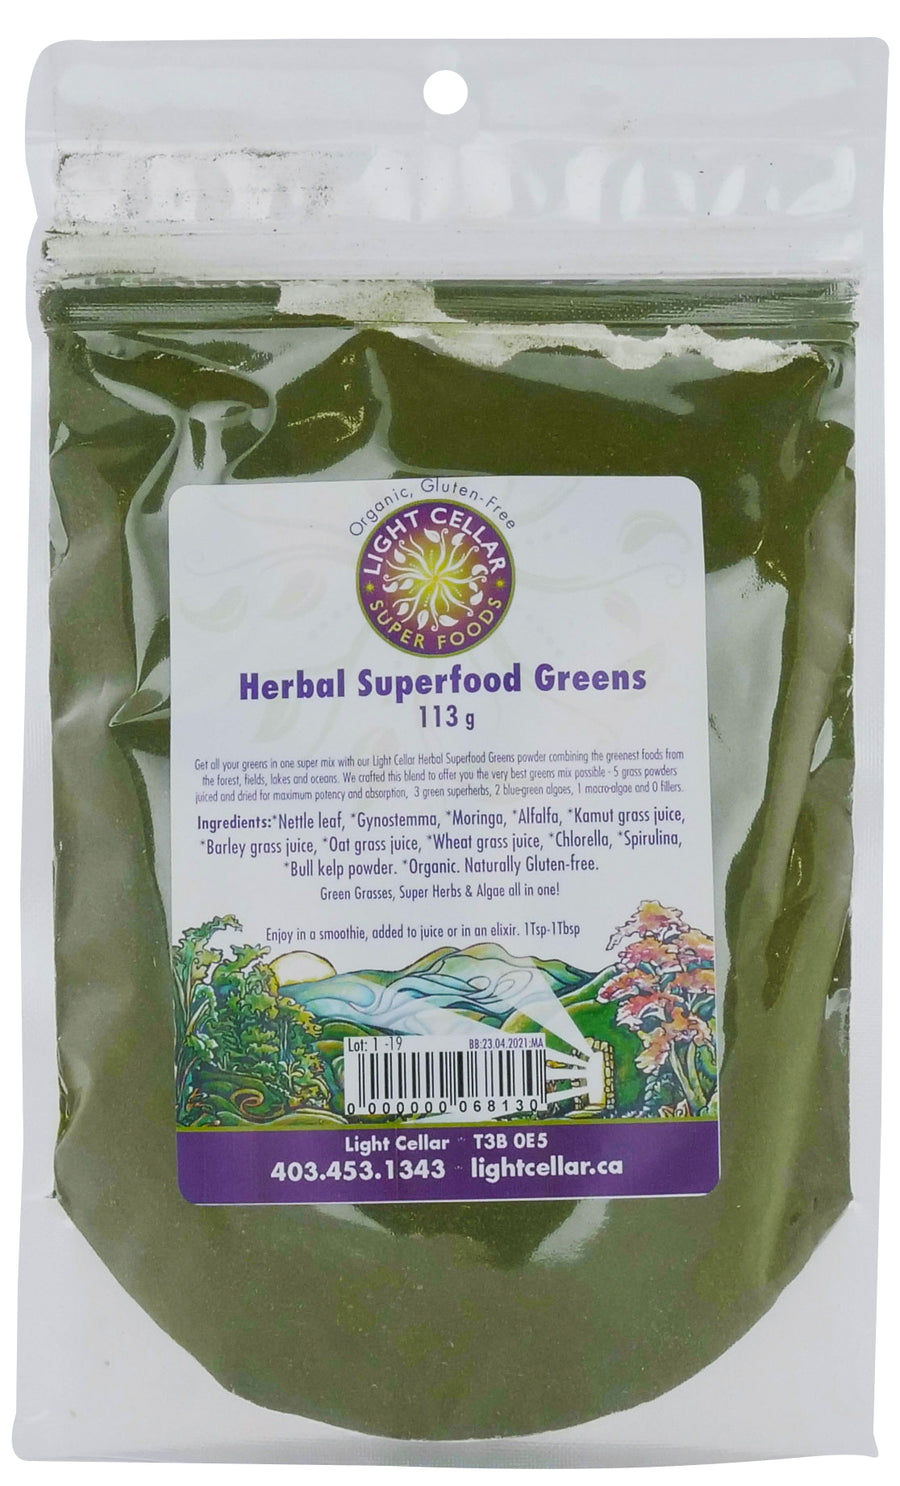 Herbal Superfood Greens